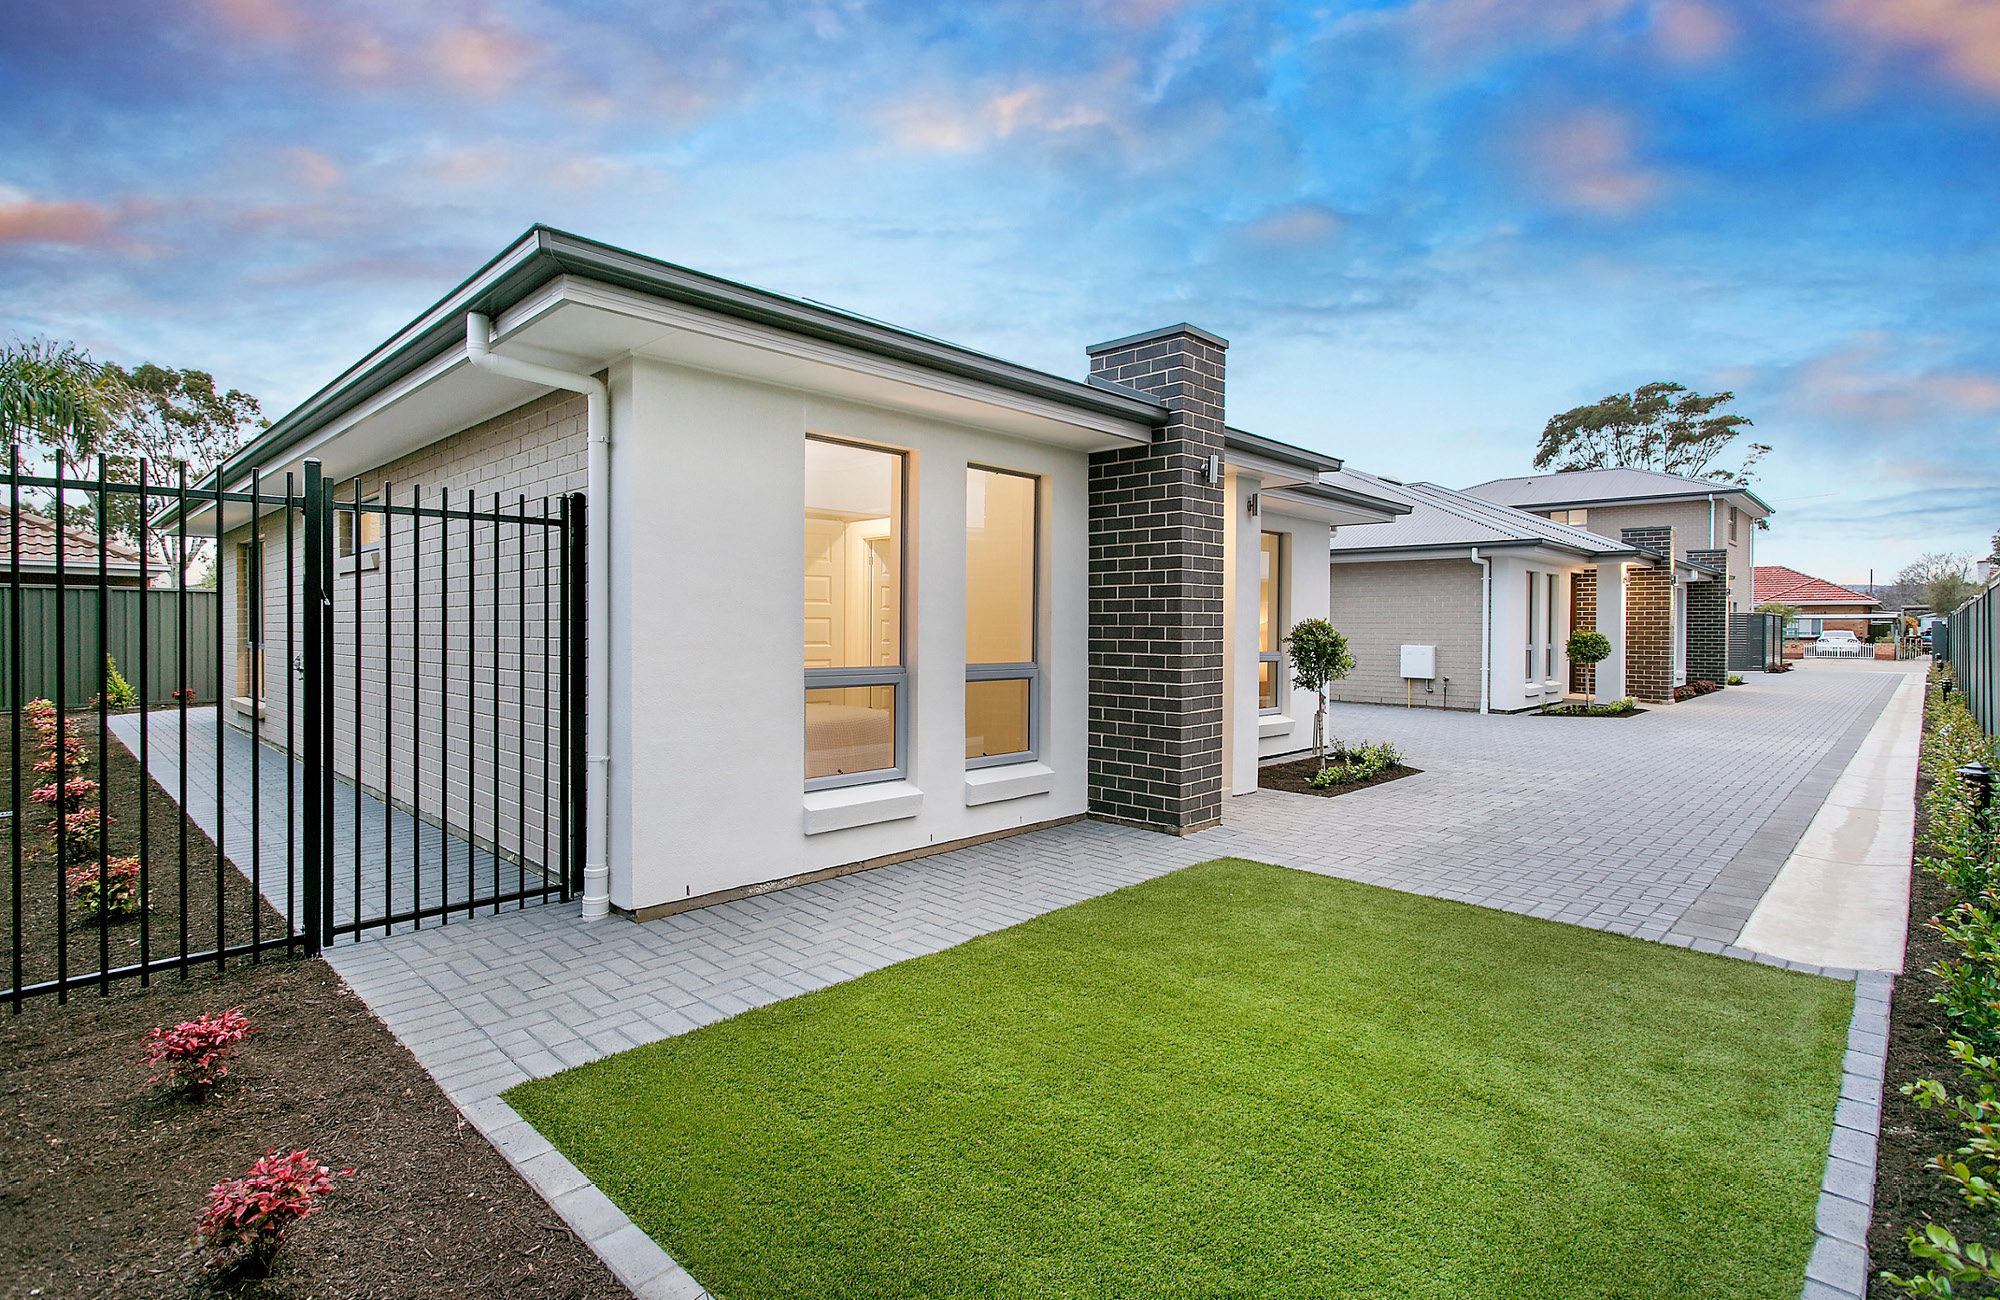 Warradale Property Development Normus Urban Projects